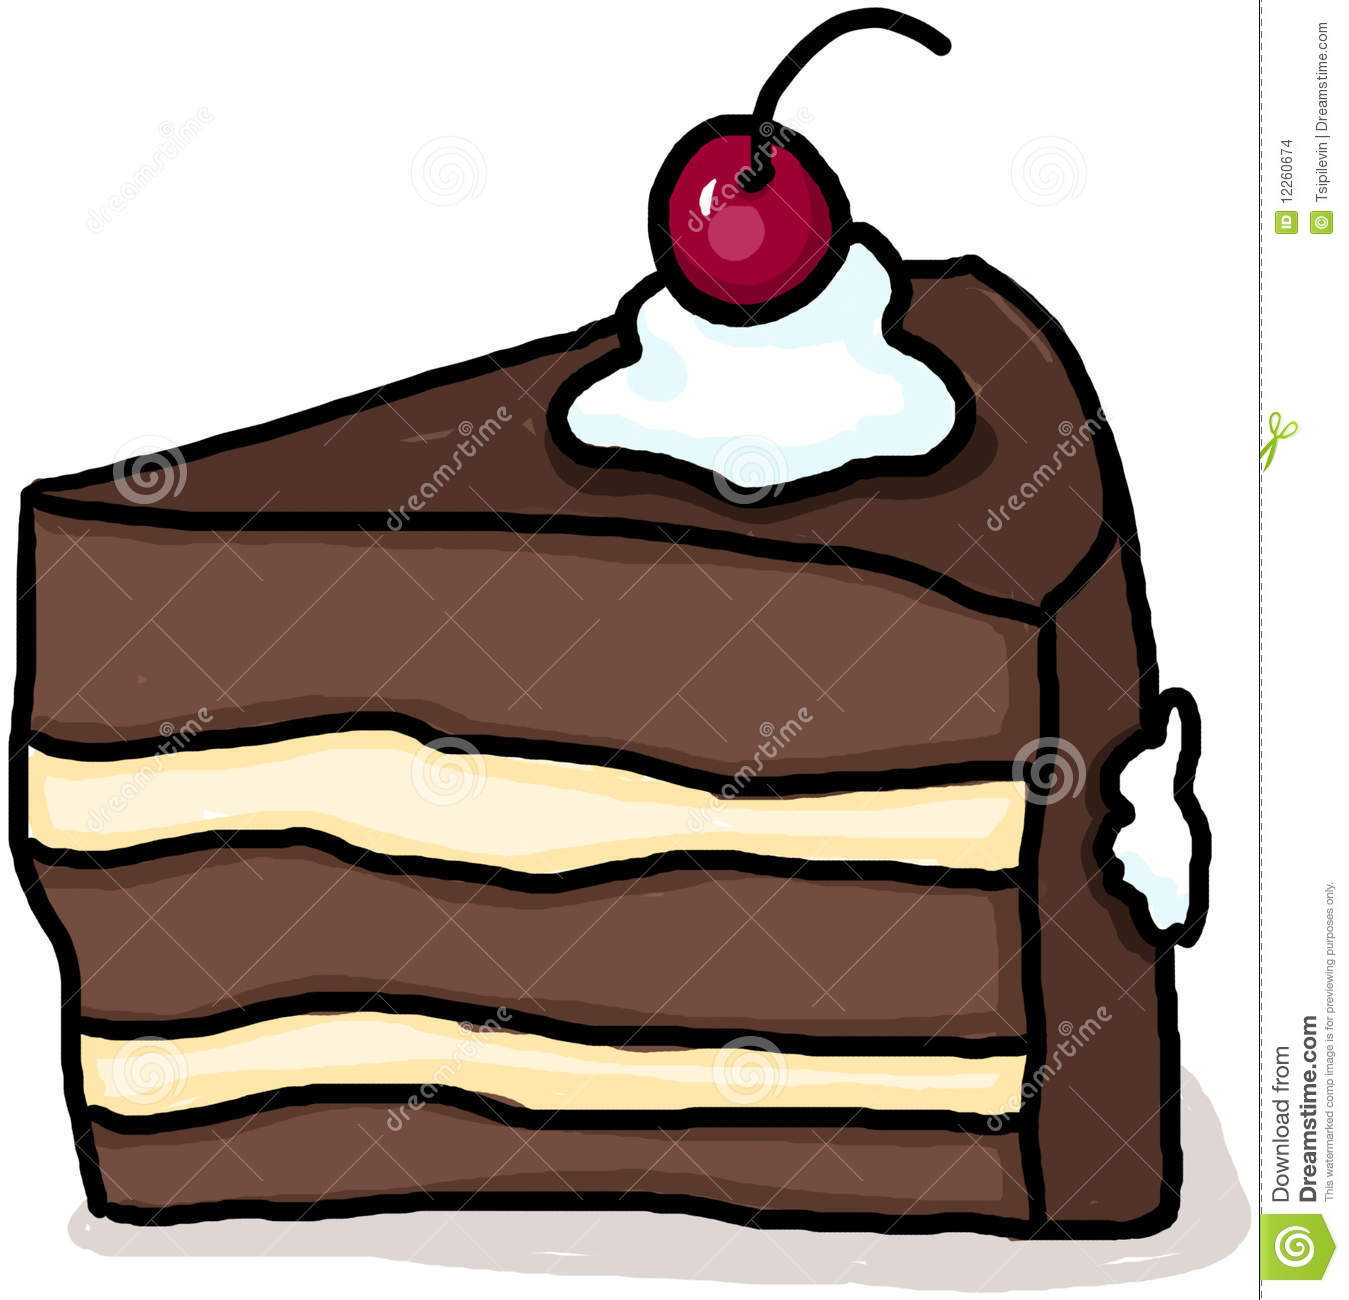 slice of cake clip art clipart panda free clipart images rh clipartpanda com slice of cake clipart image slice of cake clipart black and white